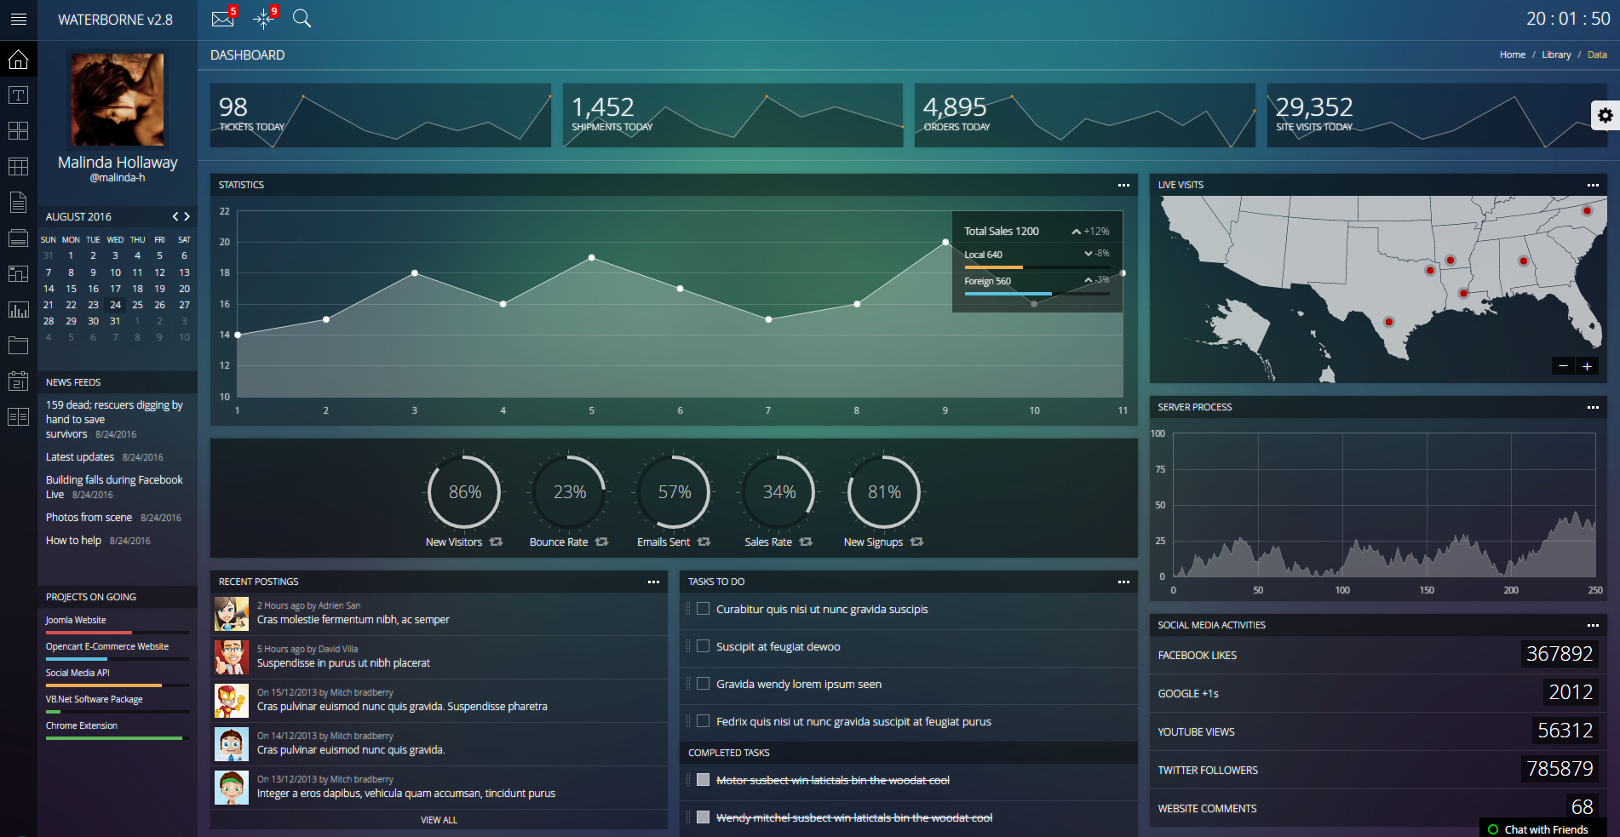 Dashboard - Visualize Data